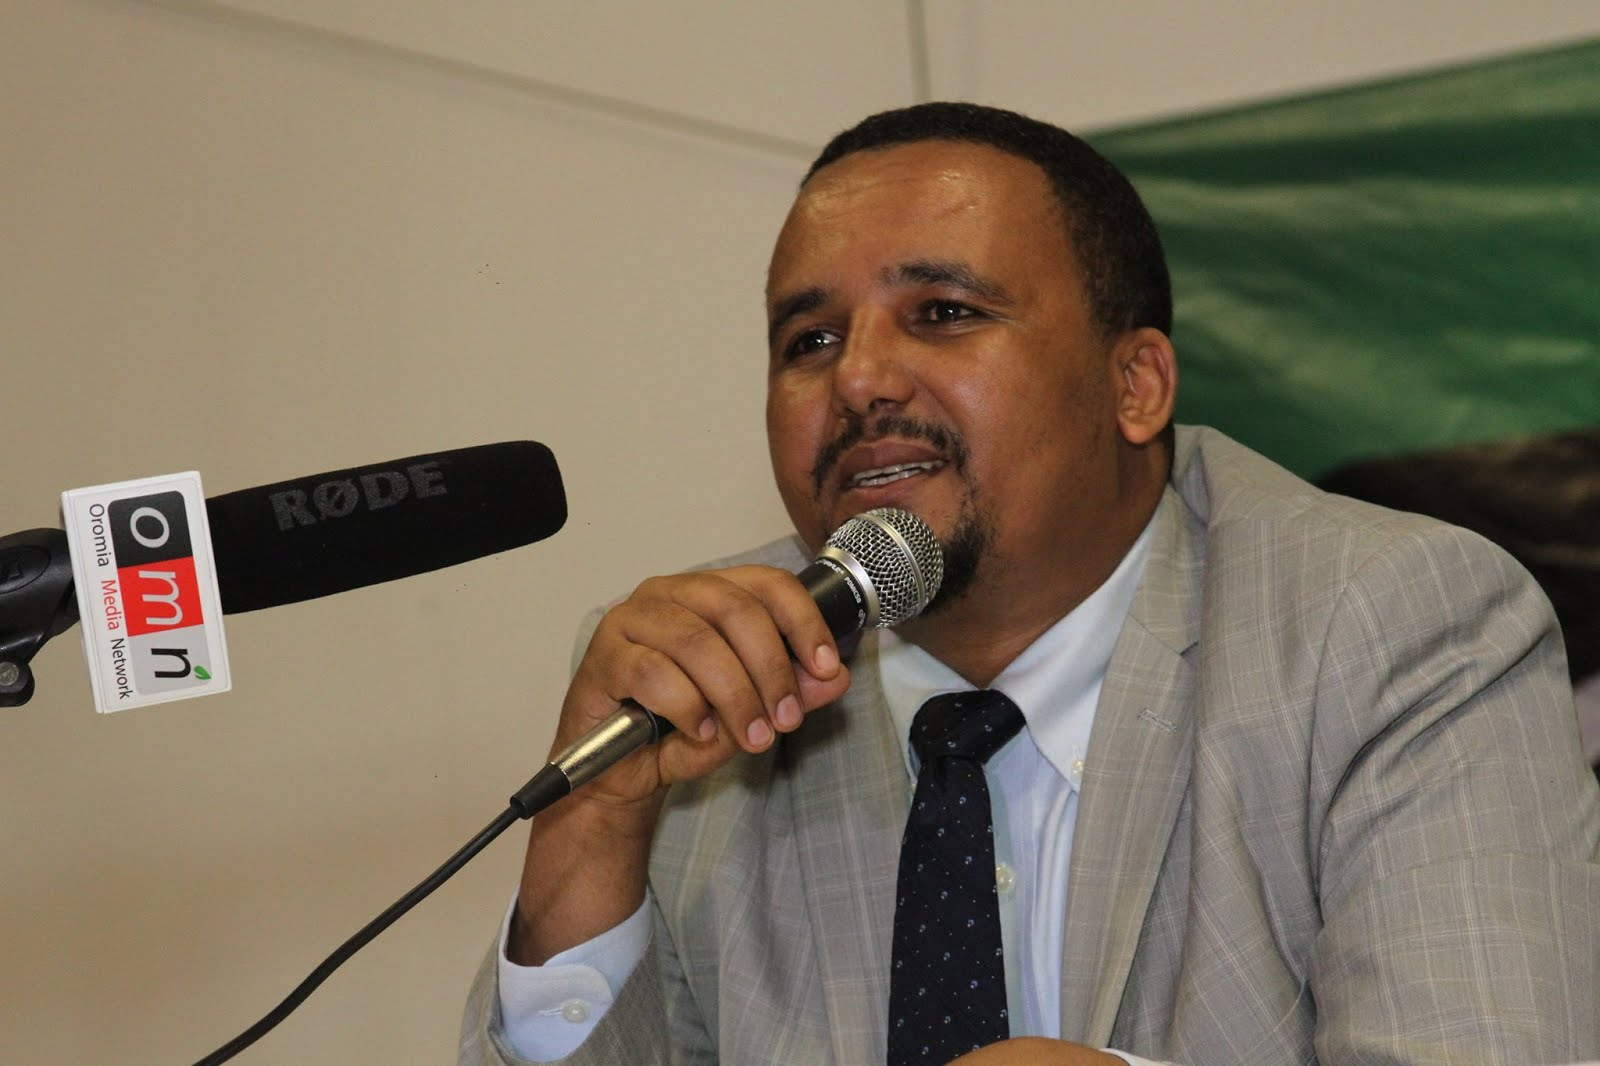 Voice of the Voiceless: With Emphasis on Oromo in Horn of Africa